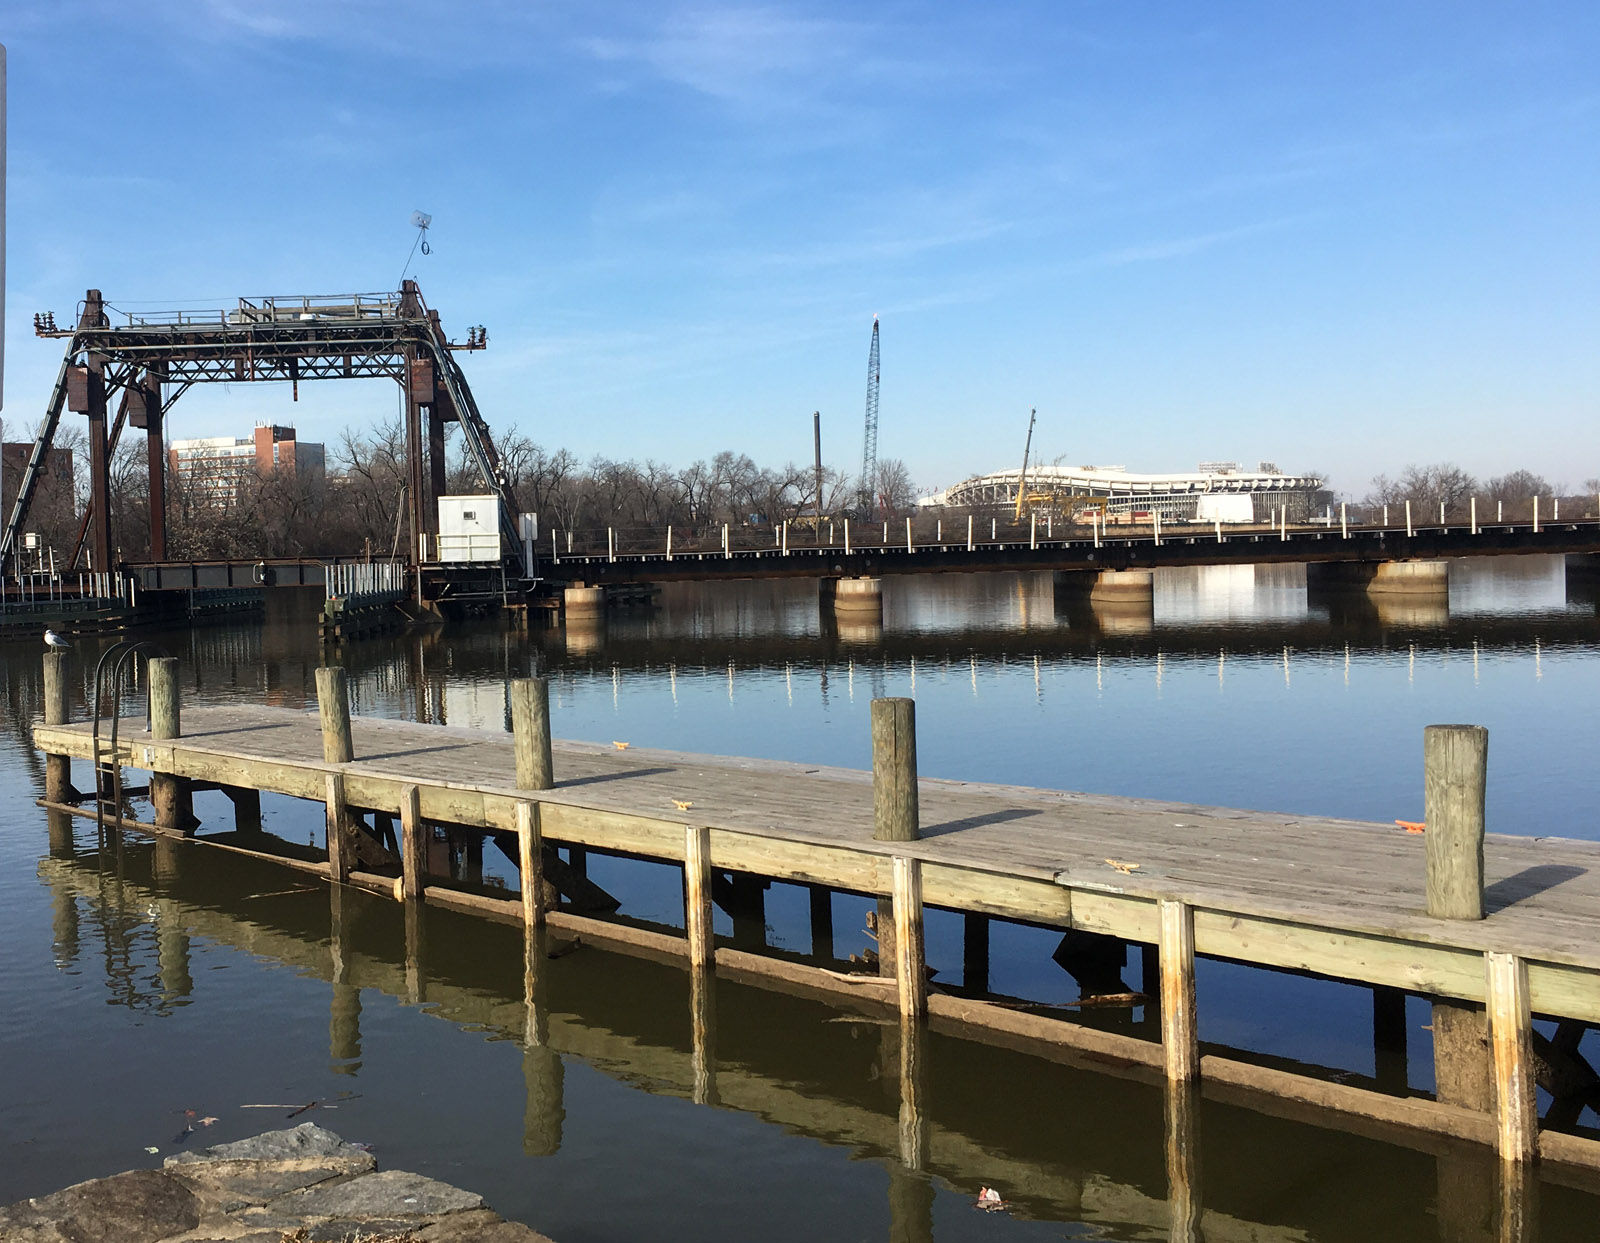 A railroad bridge crosses the Anacostia River near DC General homeless shelter and RFK Stadium in this Jan. 26, 2018 photo. D.C. police searched this stretch of river, including under the bridge, for any evidence related to the disappearance of Relisha Rudd. The 8-year-old girl was last seen alive in March 2014. (WTOP/Mike Murillo)